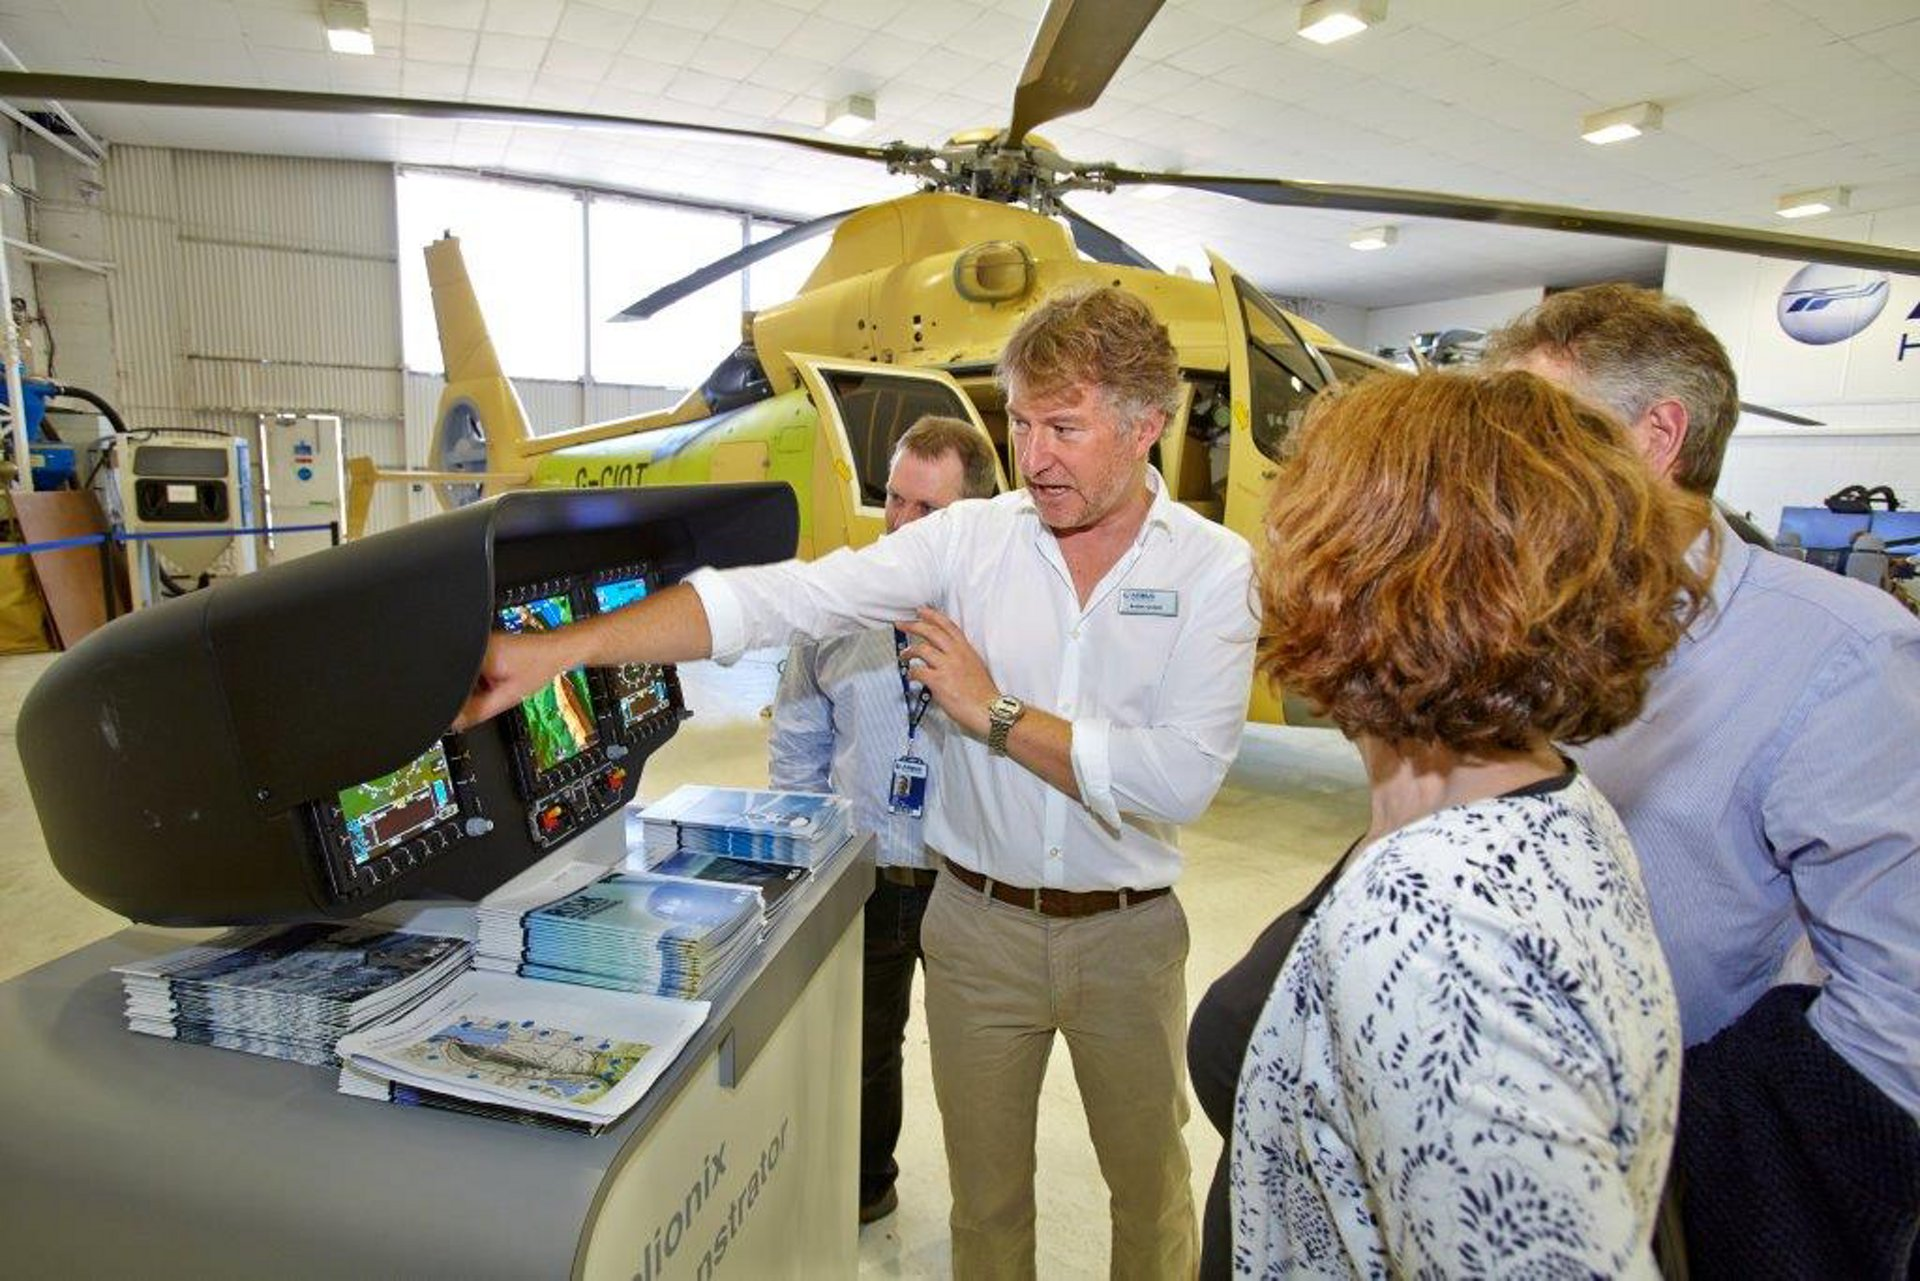 Safety Roadshows Bring Change to Aviation Culture